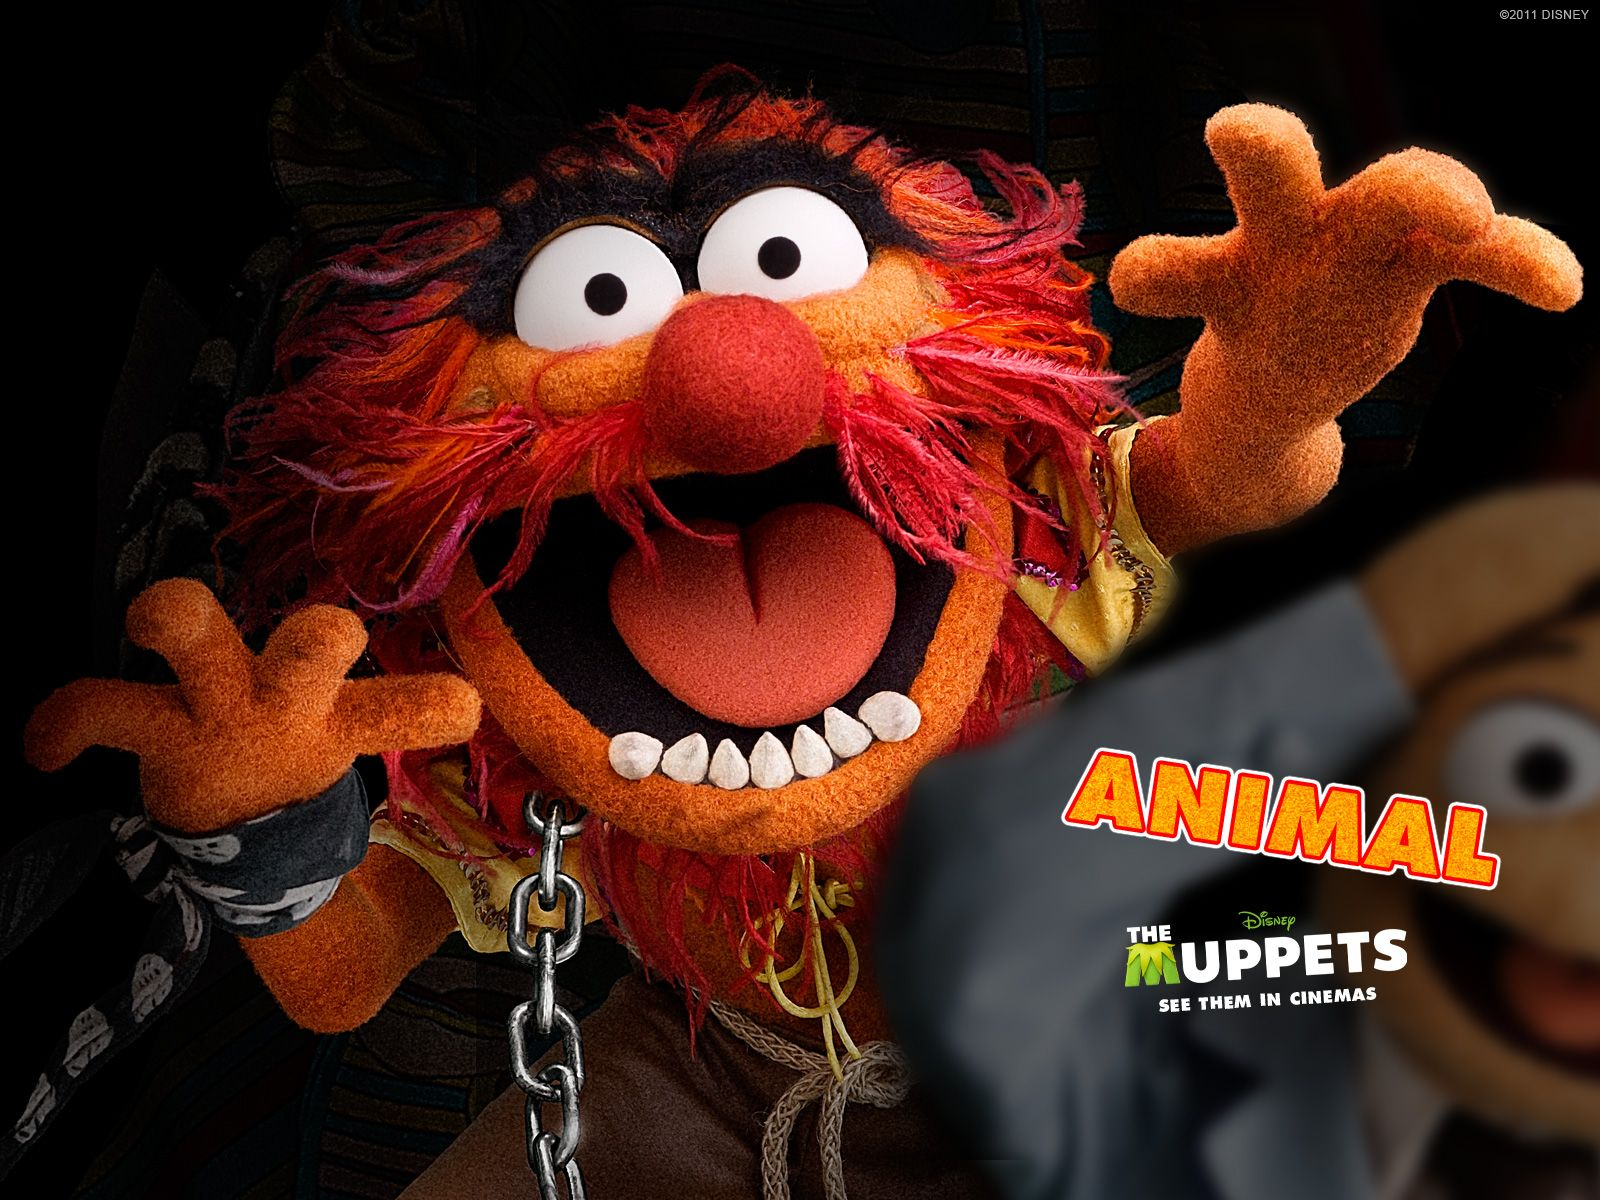 How dateable are you actually animal dental humor and - Animal muppet images ...